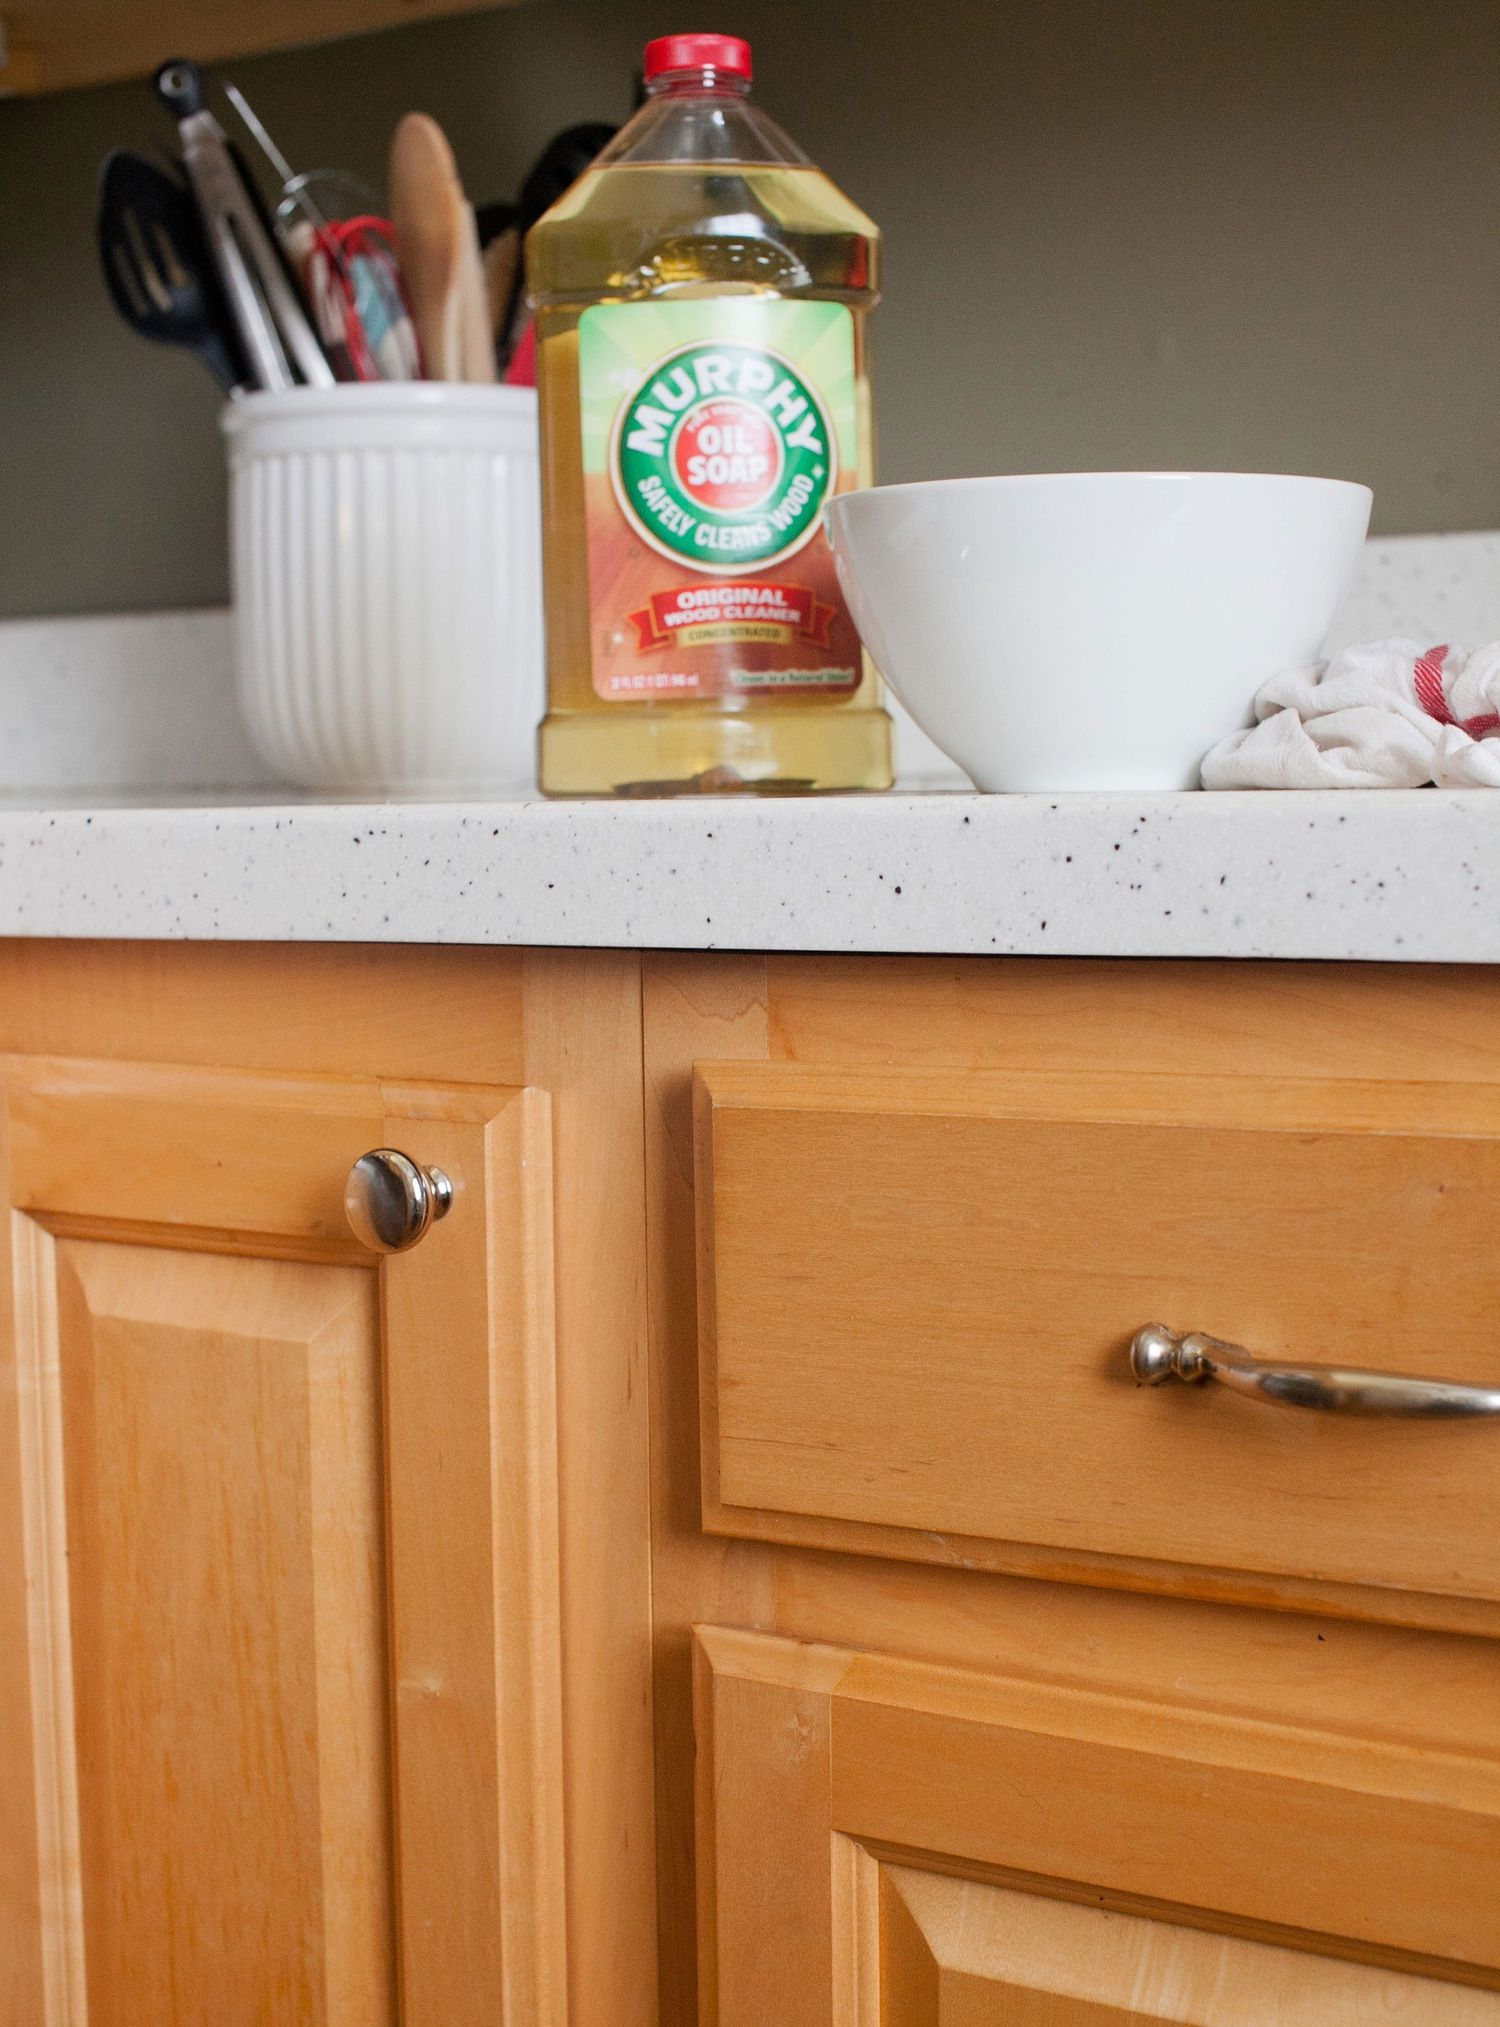 How To Clean Wood Kitchen Cabinets And The Best Cleaner For The Job